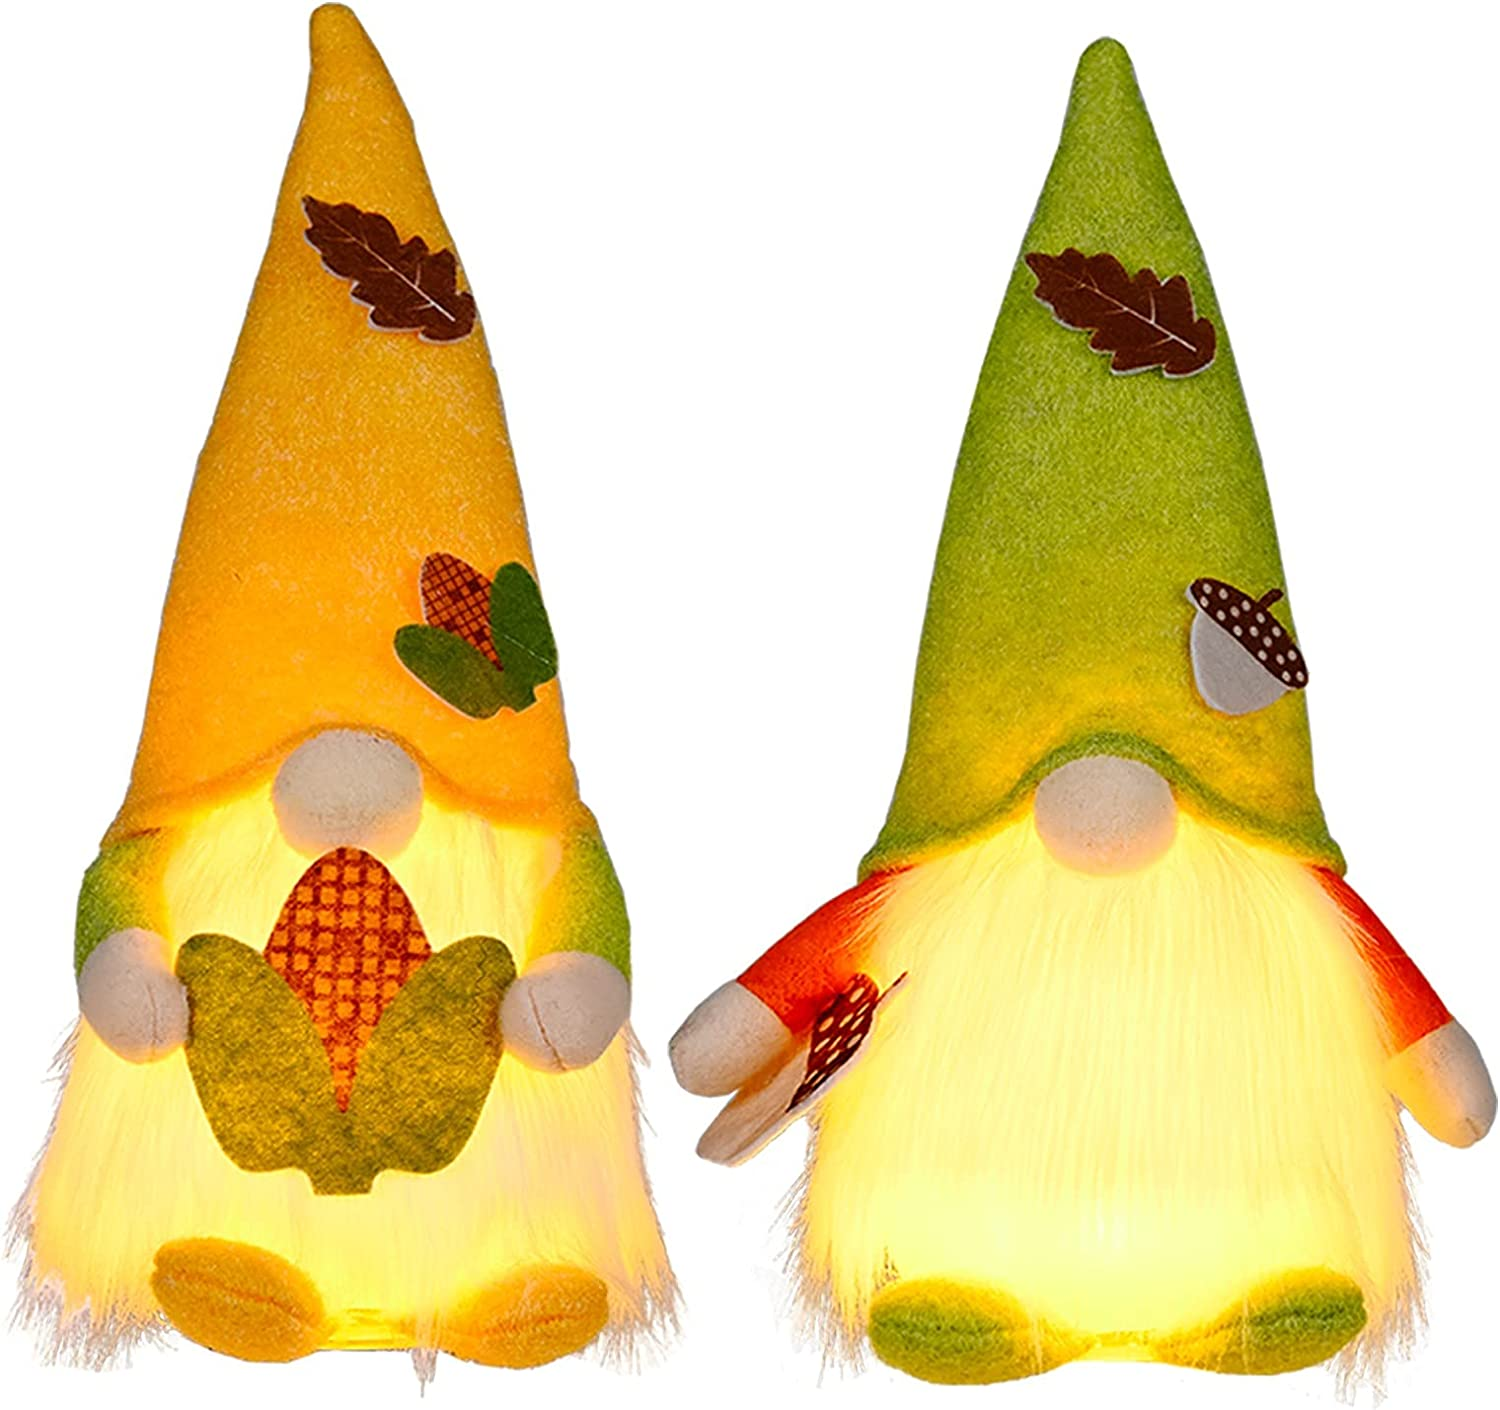 Gnomes Plush Decor Lighted Max 65% OFF Gnome up for New mail order Home Light